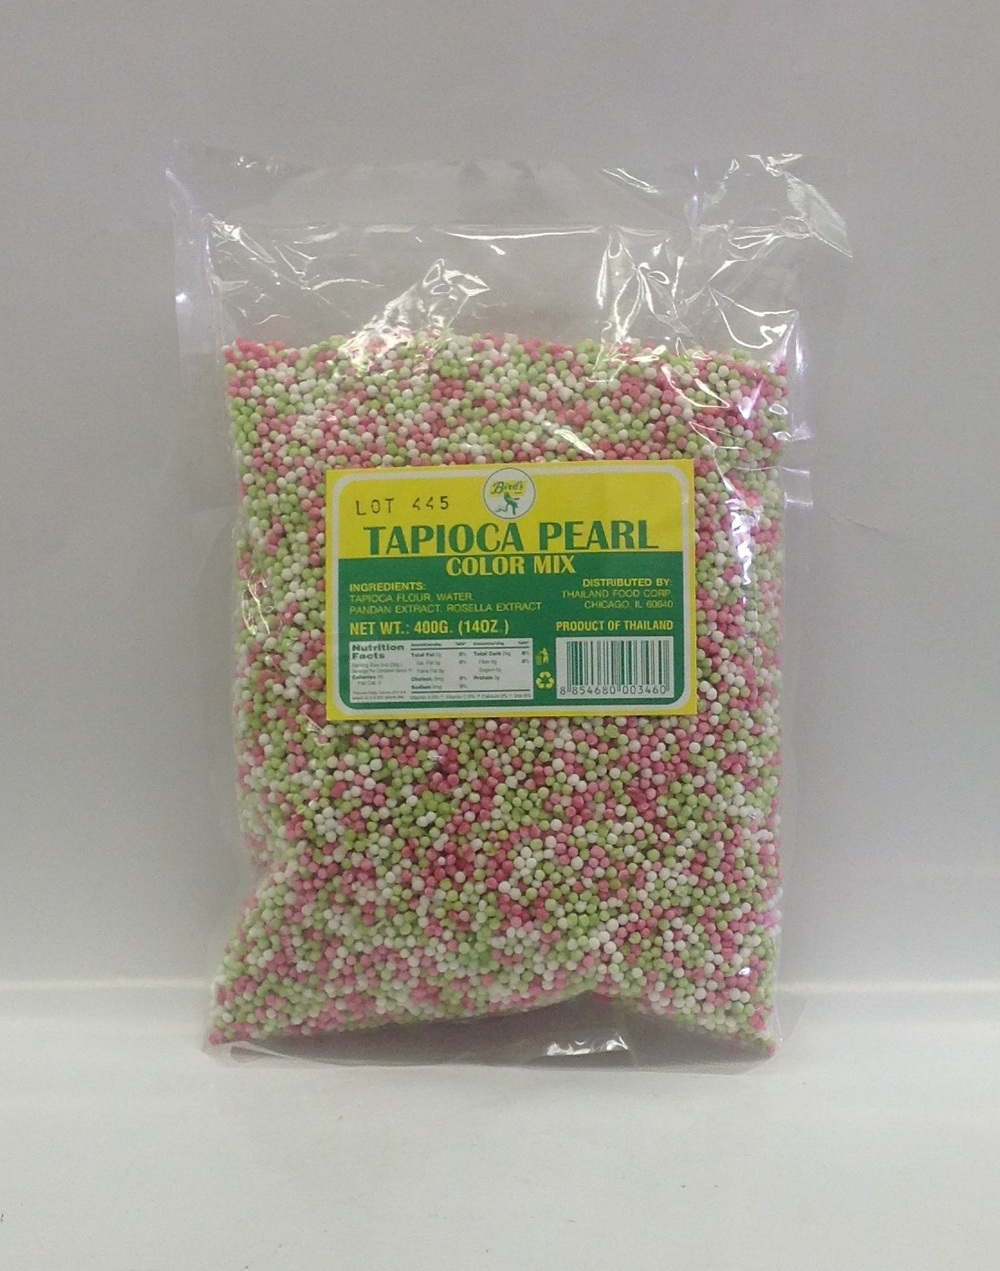 Tapioca Pearl (Color Mix)   Bird's   FL17619 50x14 oz